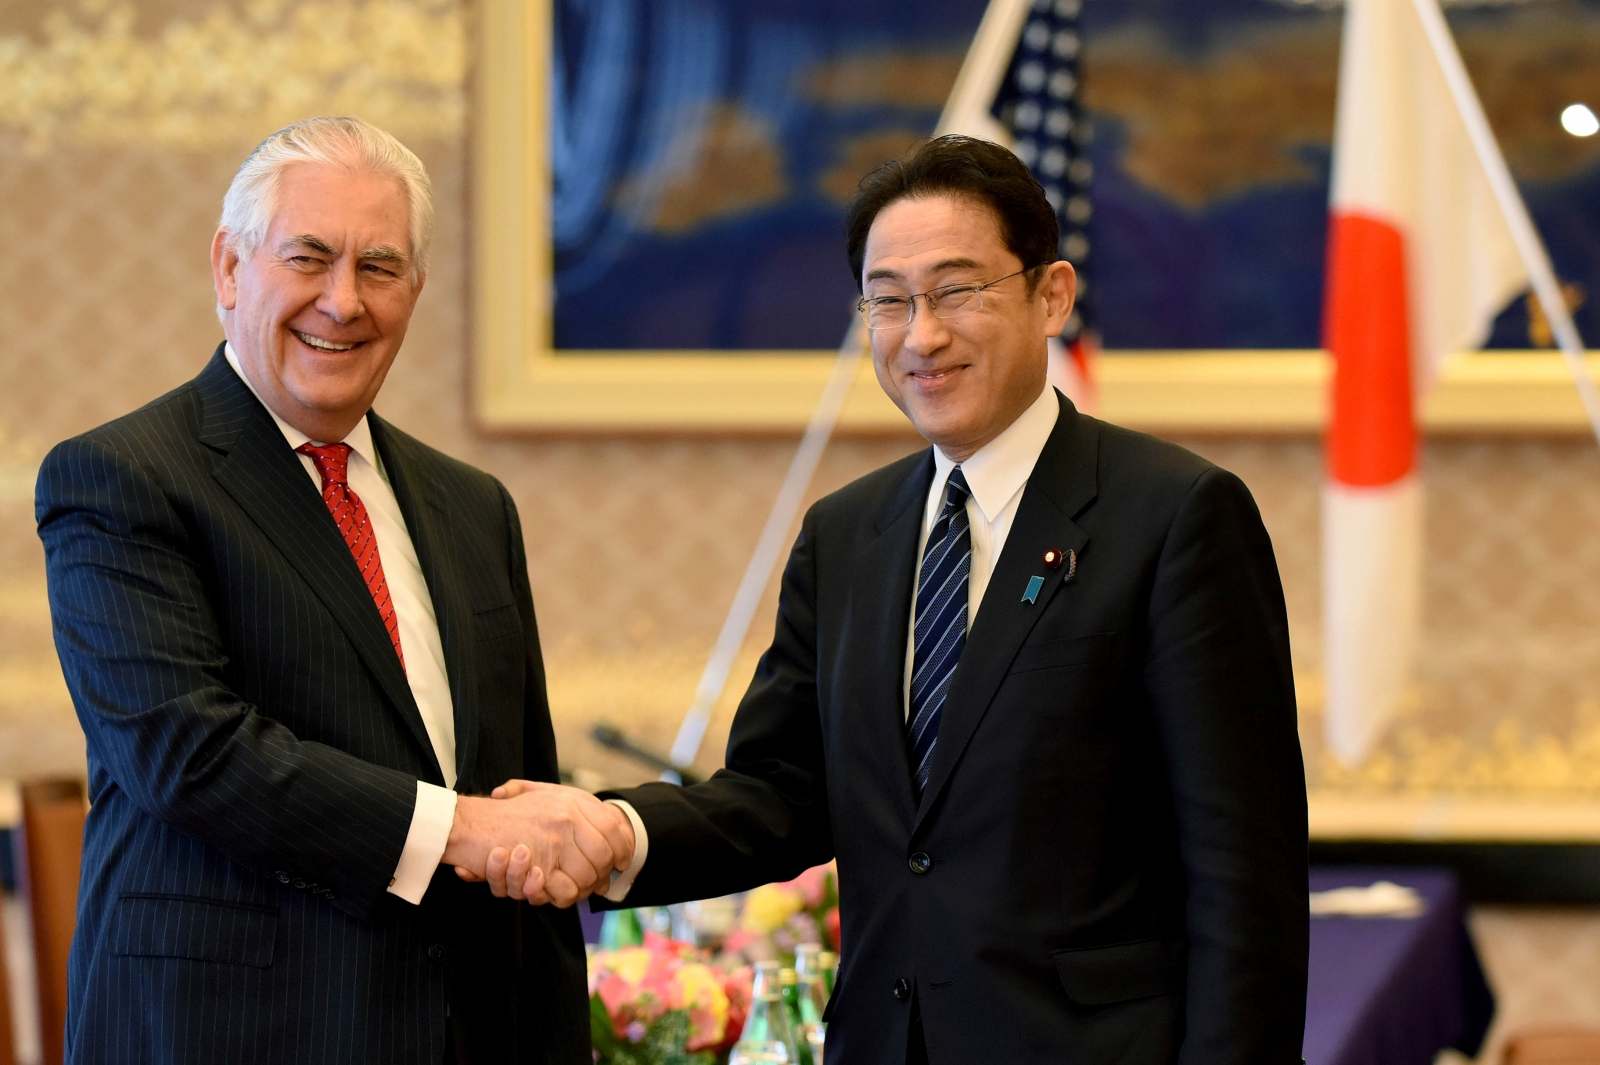 Japan, US agree to urge N. Korea to halt nuke, missile programs